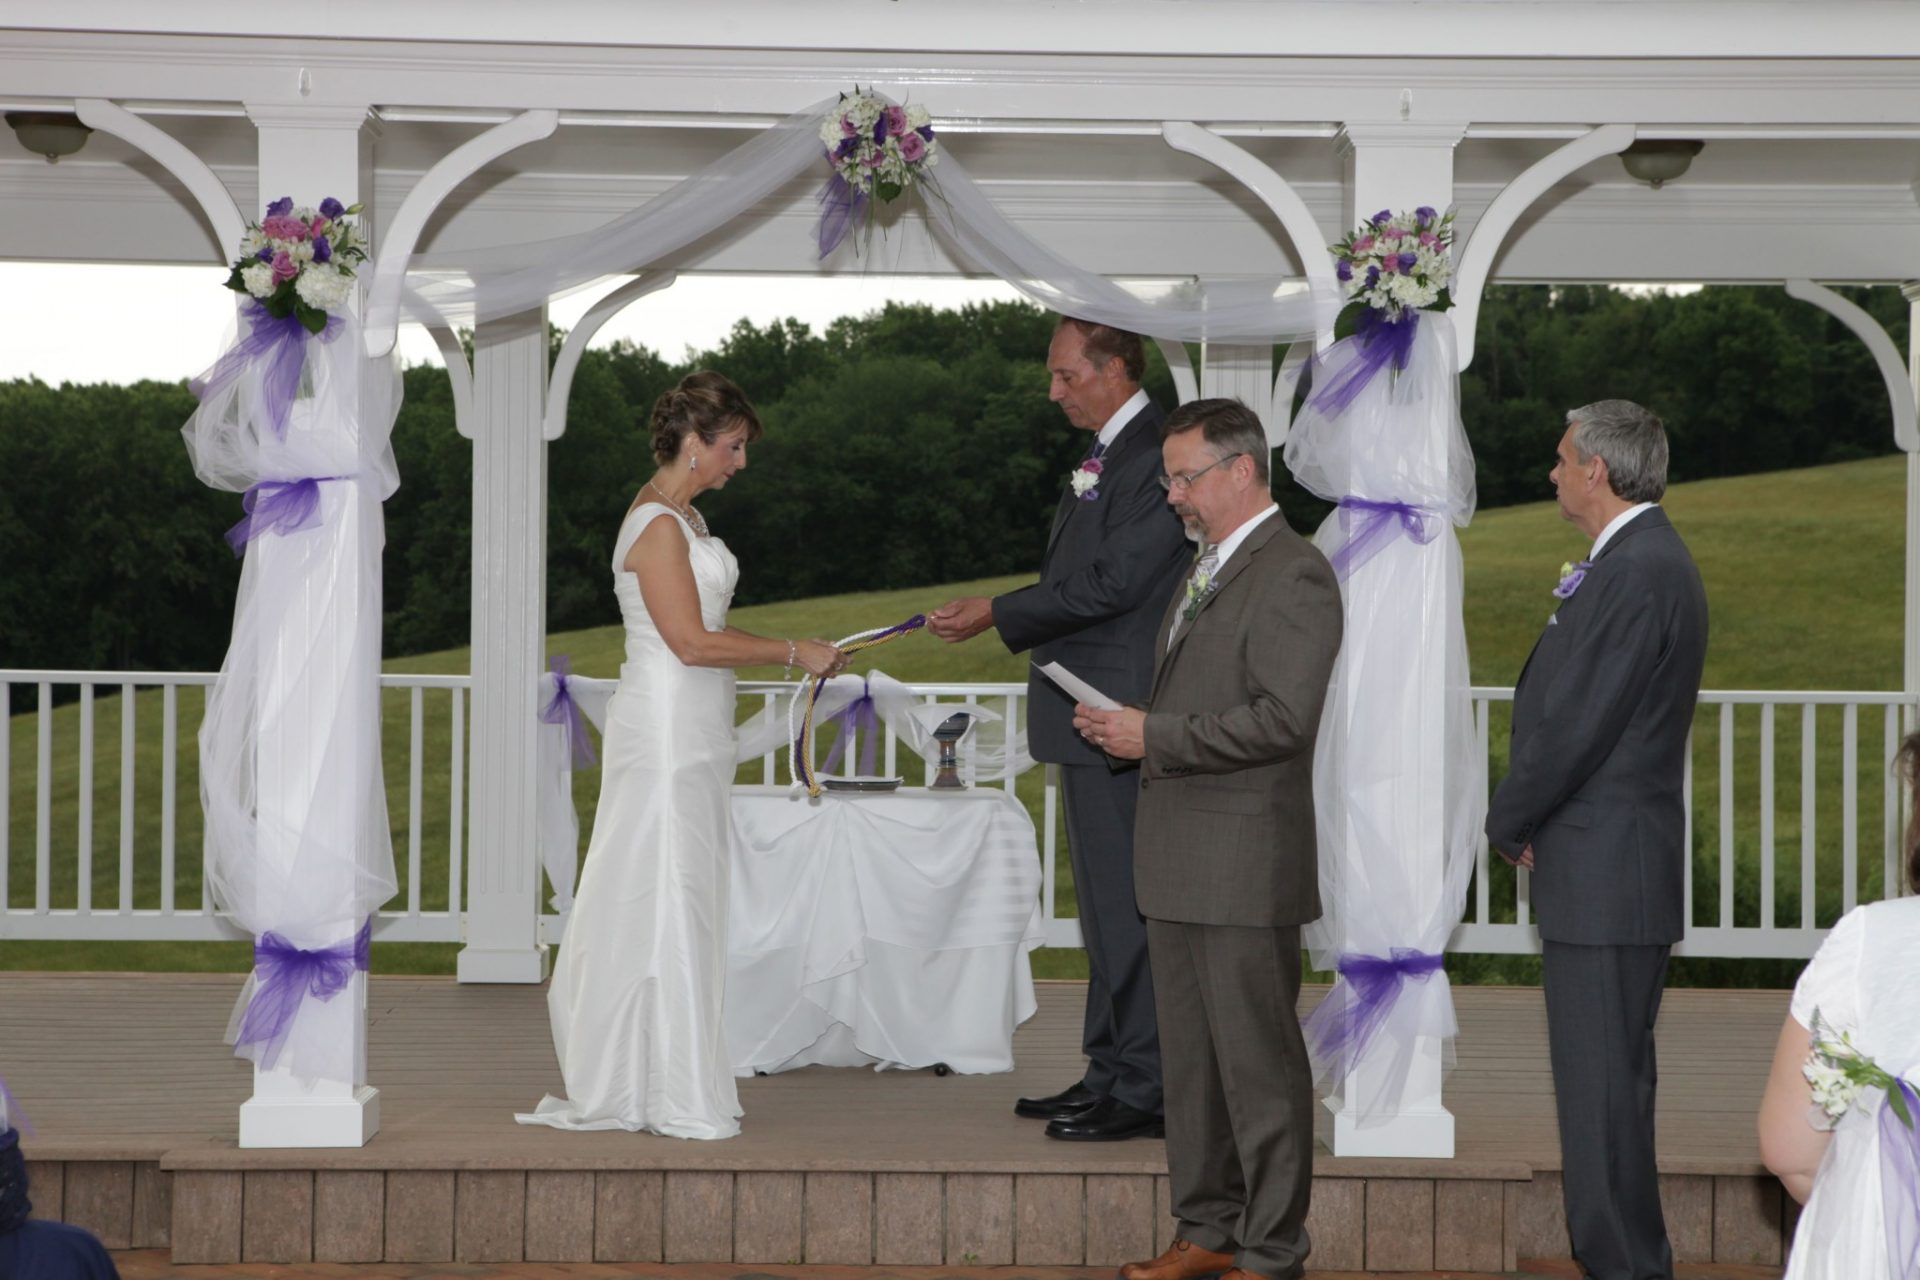 Summer wedding at Morningside Inn on the outdoor pavilion. Bride and groom hold hands on the pavilion decorated with purple and pink flowers and white linen